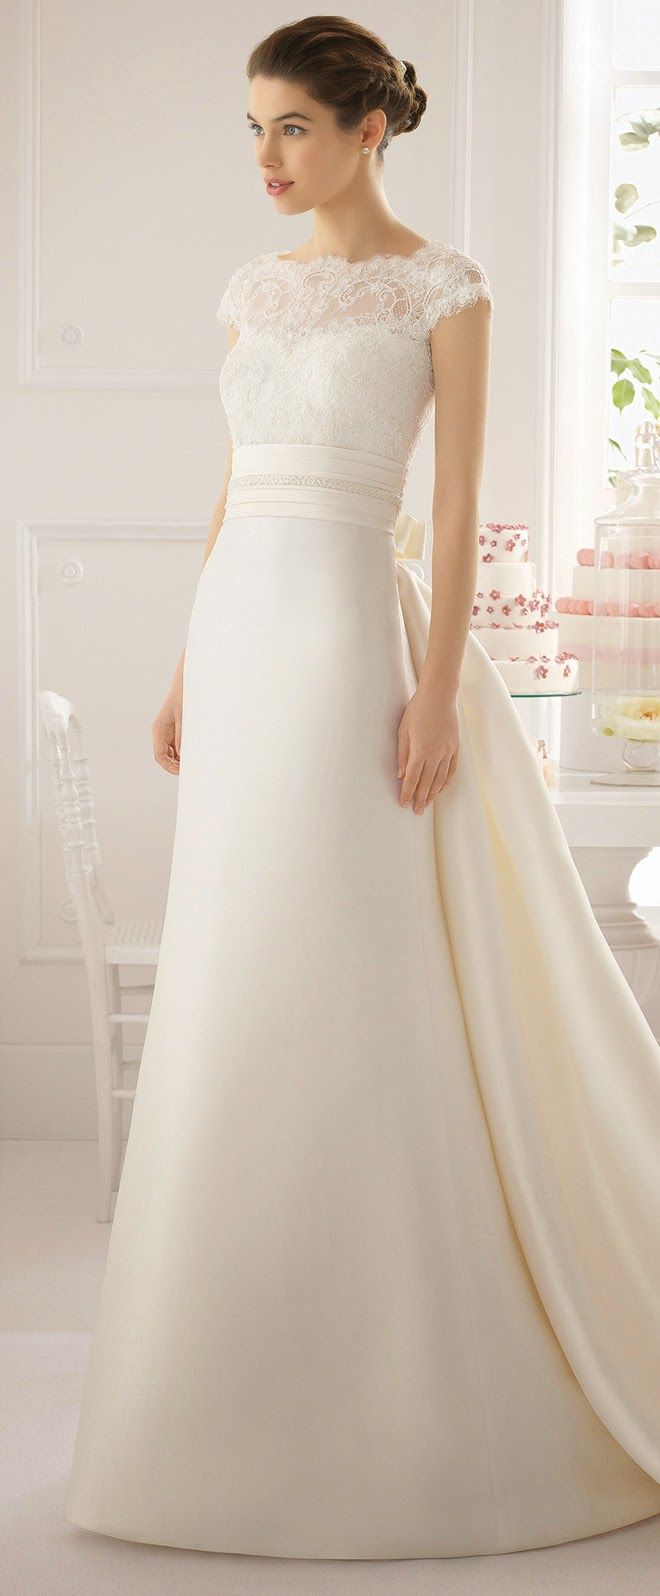 Fifties Wedding Dresses 92 Vintage Please contact Aire Barcelona